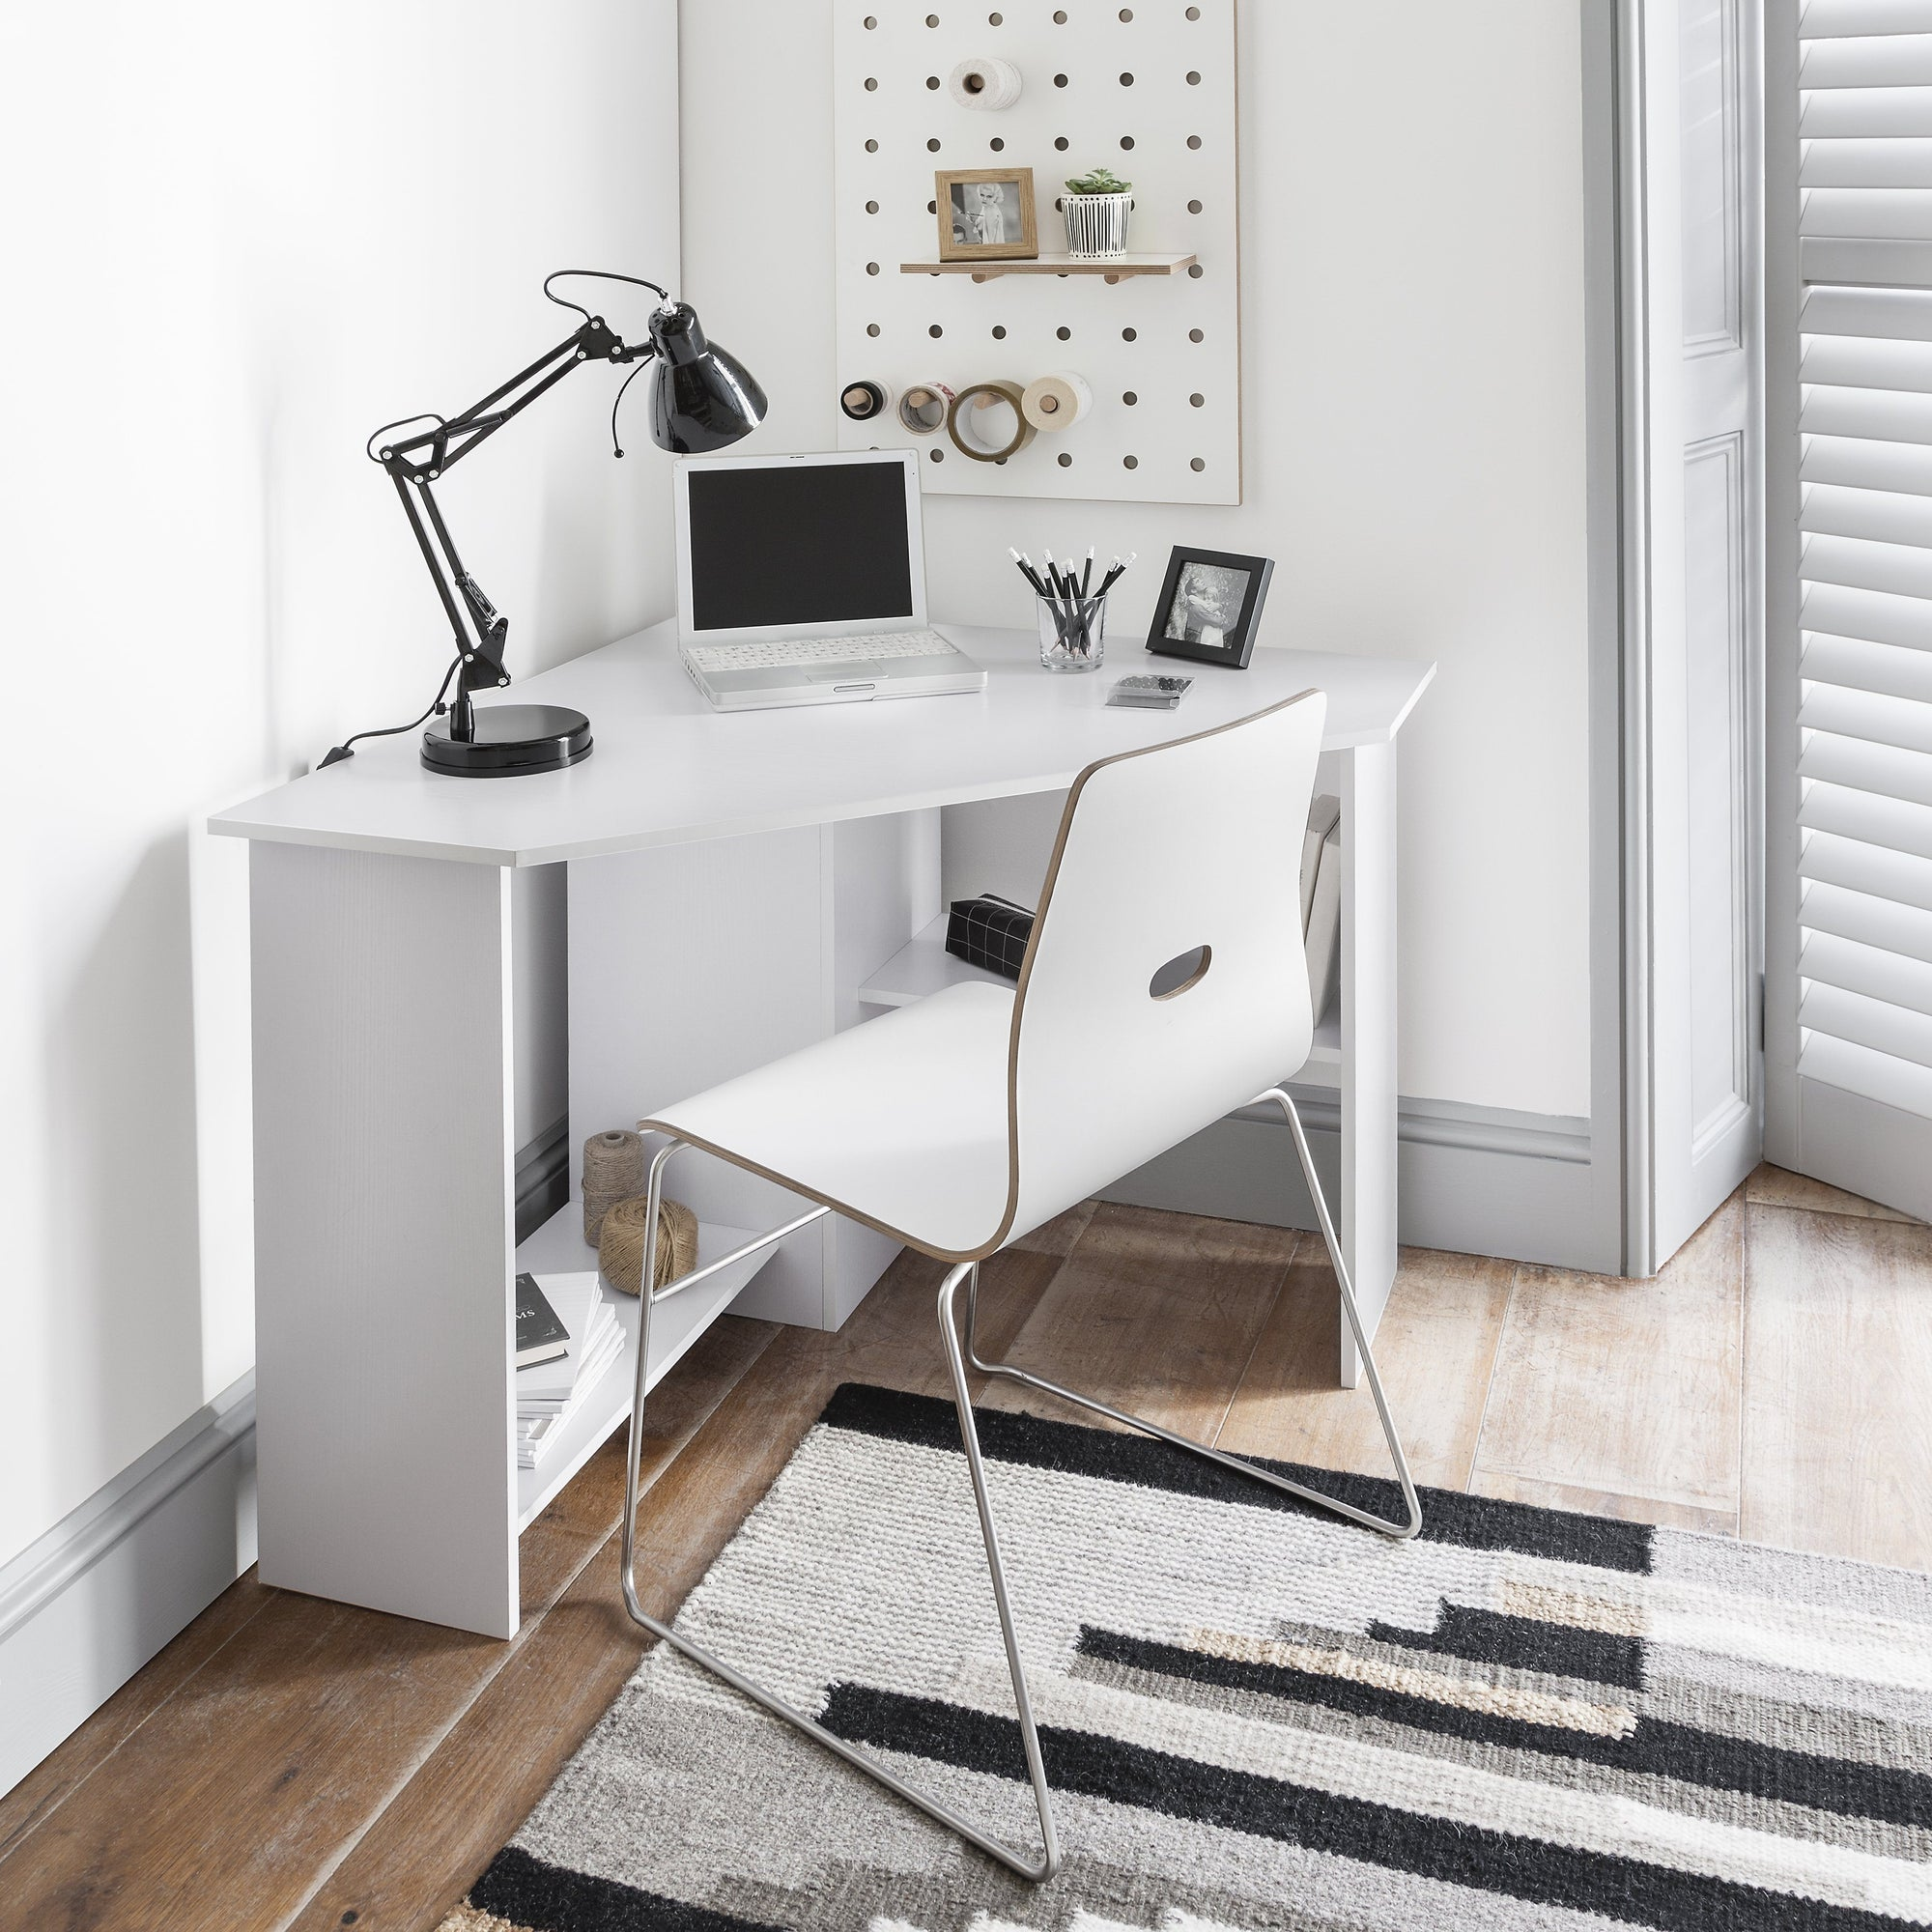 Corner home office desk computer workstation pc laptop table with shelves white laura james